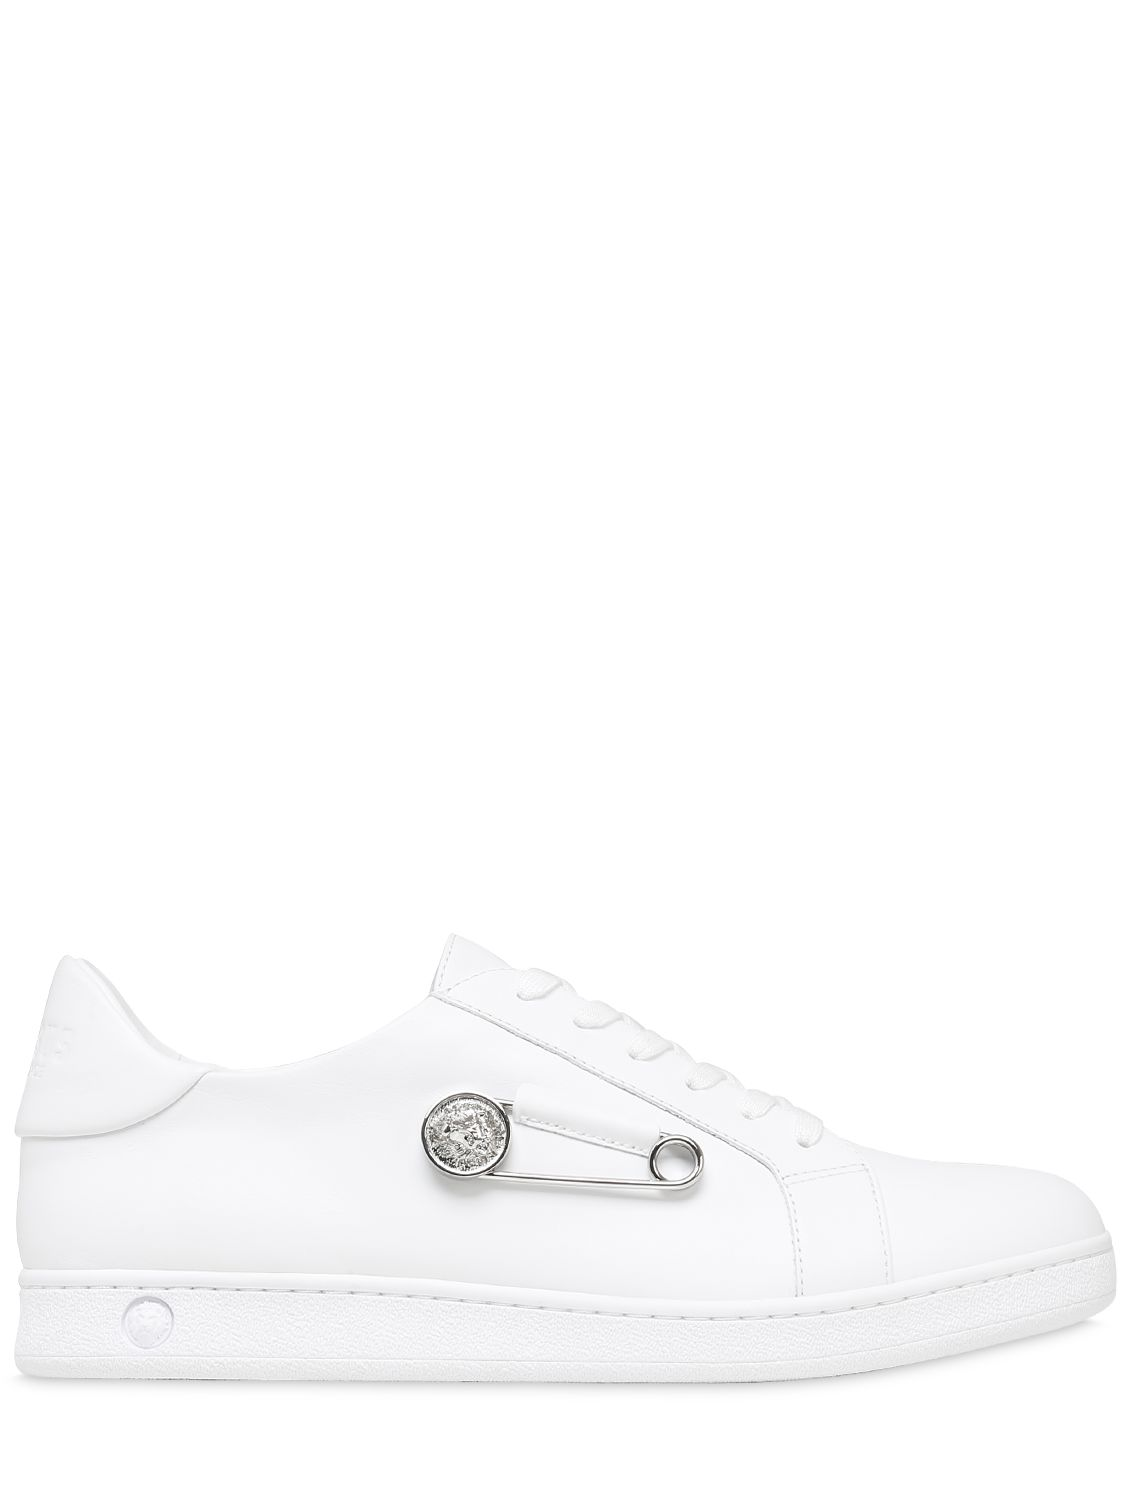 1125x1500 Versus Safety Pin Leather Sneakers White Men Shoes [M65i Bqp001